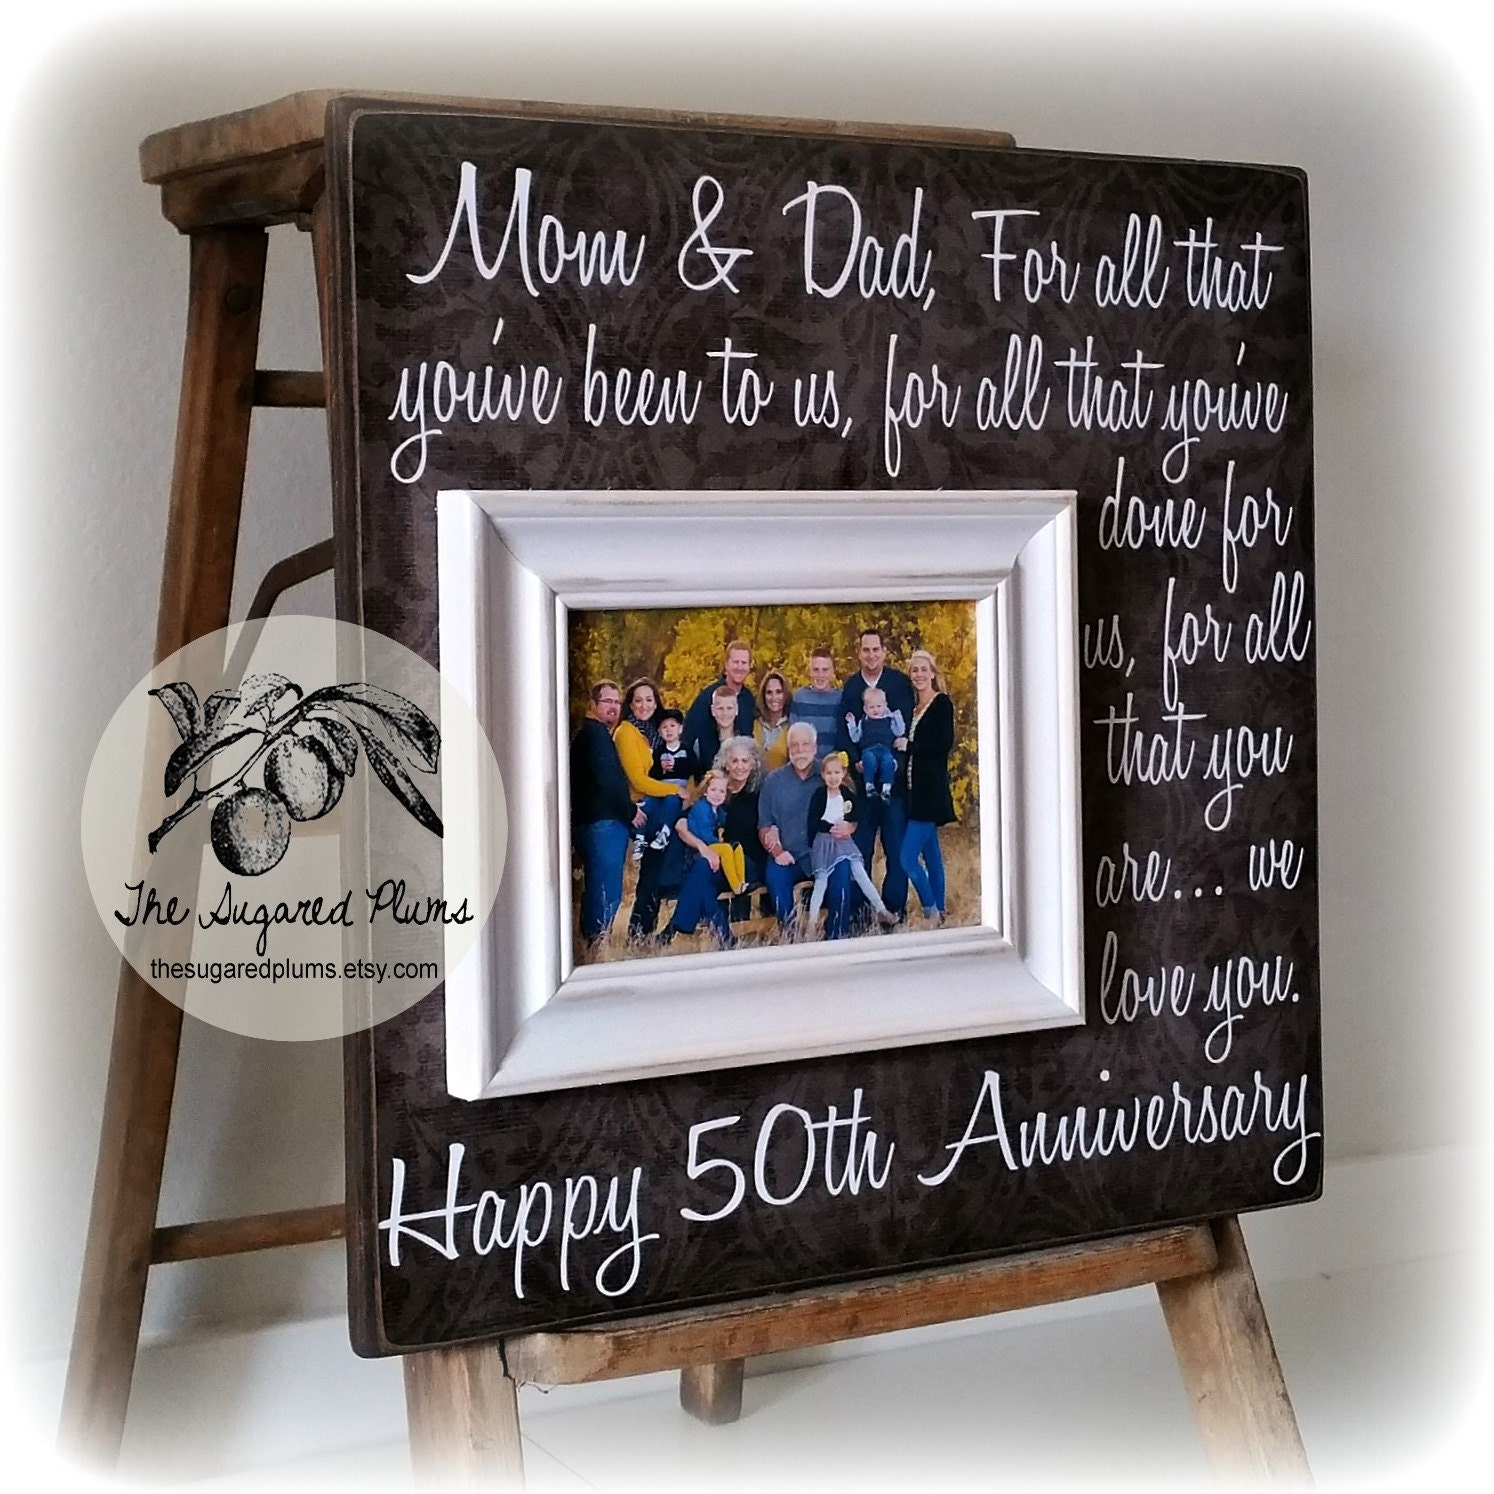 Gifts For 25th Wedding Anniversary For Parents: Parents Anniversary Gift 50th Anniversary Gifts For All That